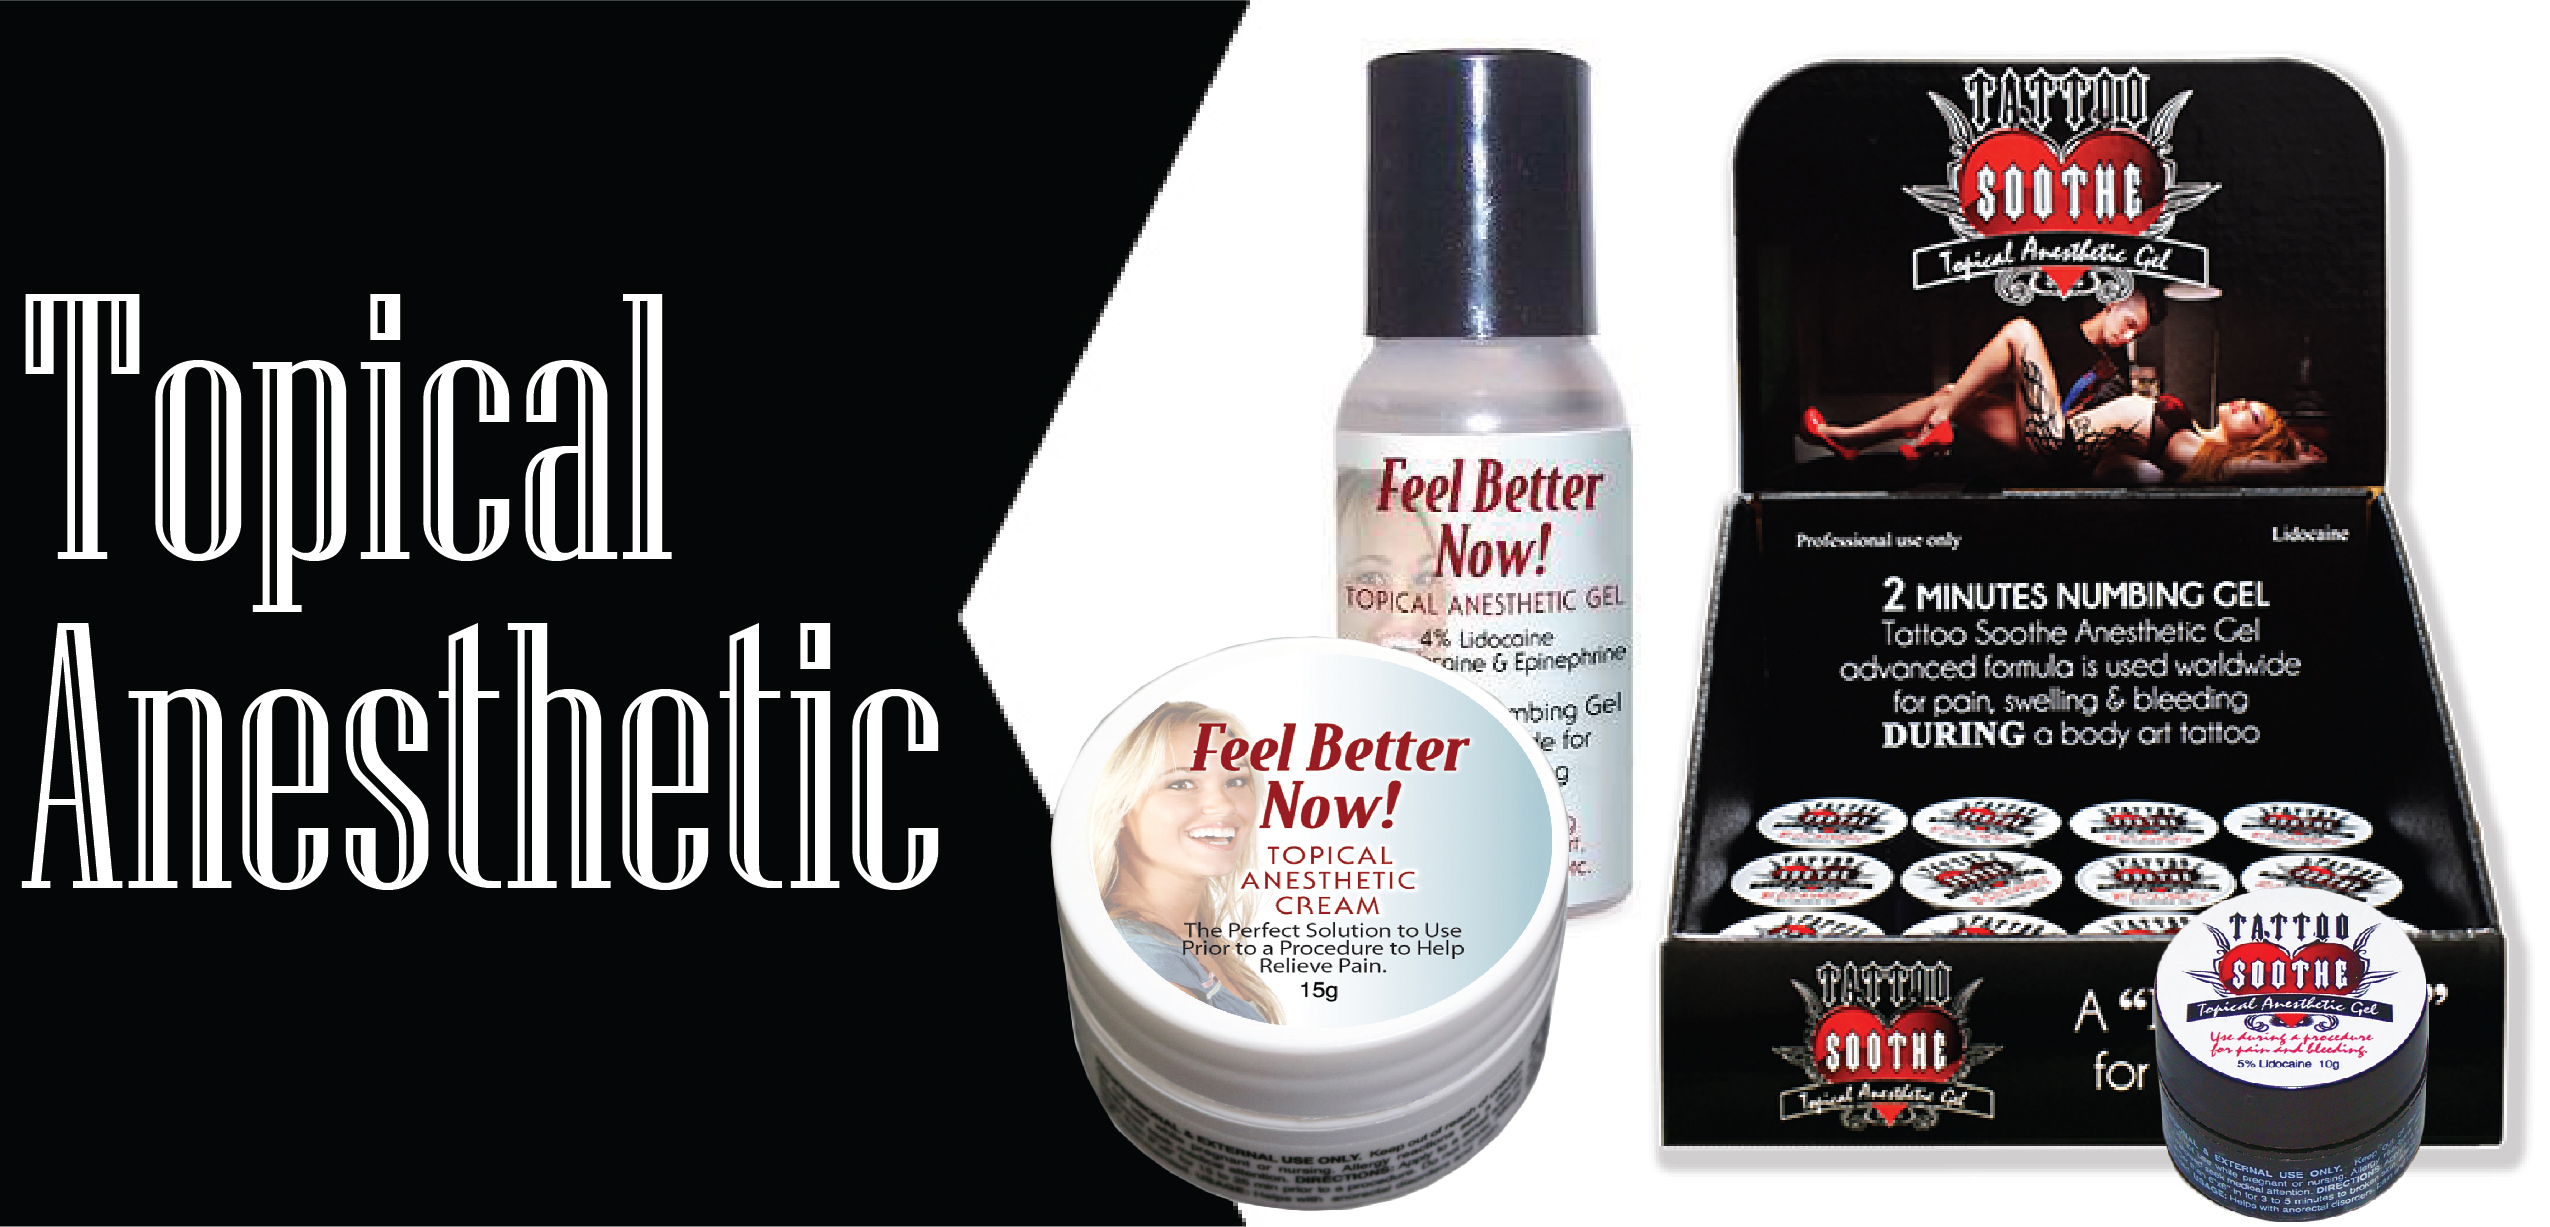 wholesale tattoo cosmetics, cosmetic tattoo supplies, topical anesthetic, feel better now, tattoo soothe